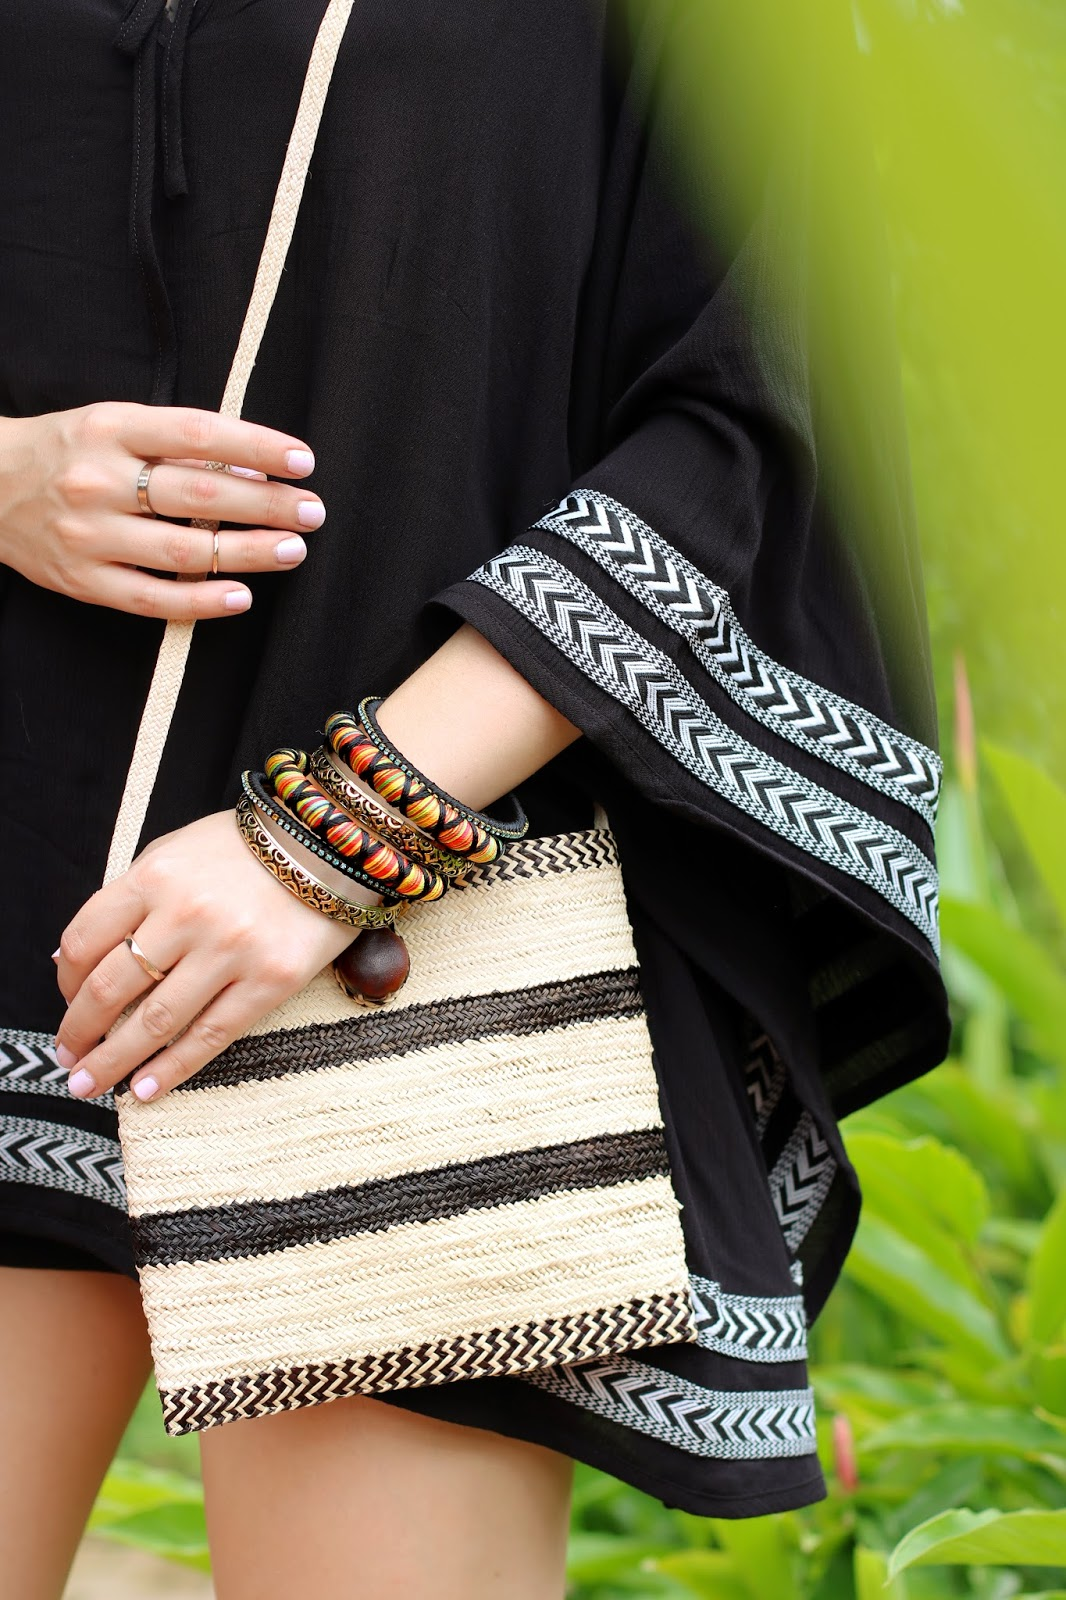 These boho bangles are the perfect Summer accessory!